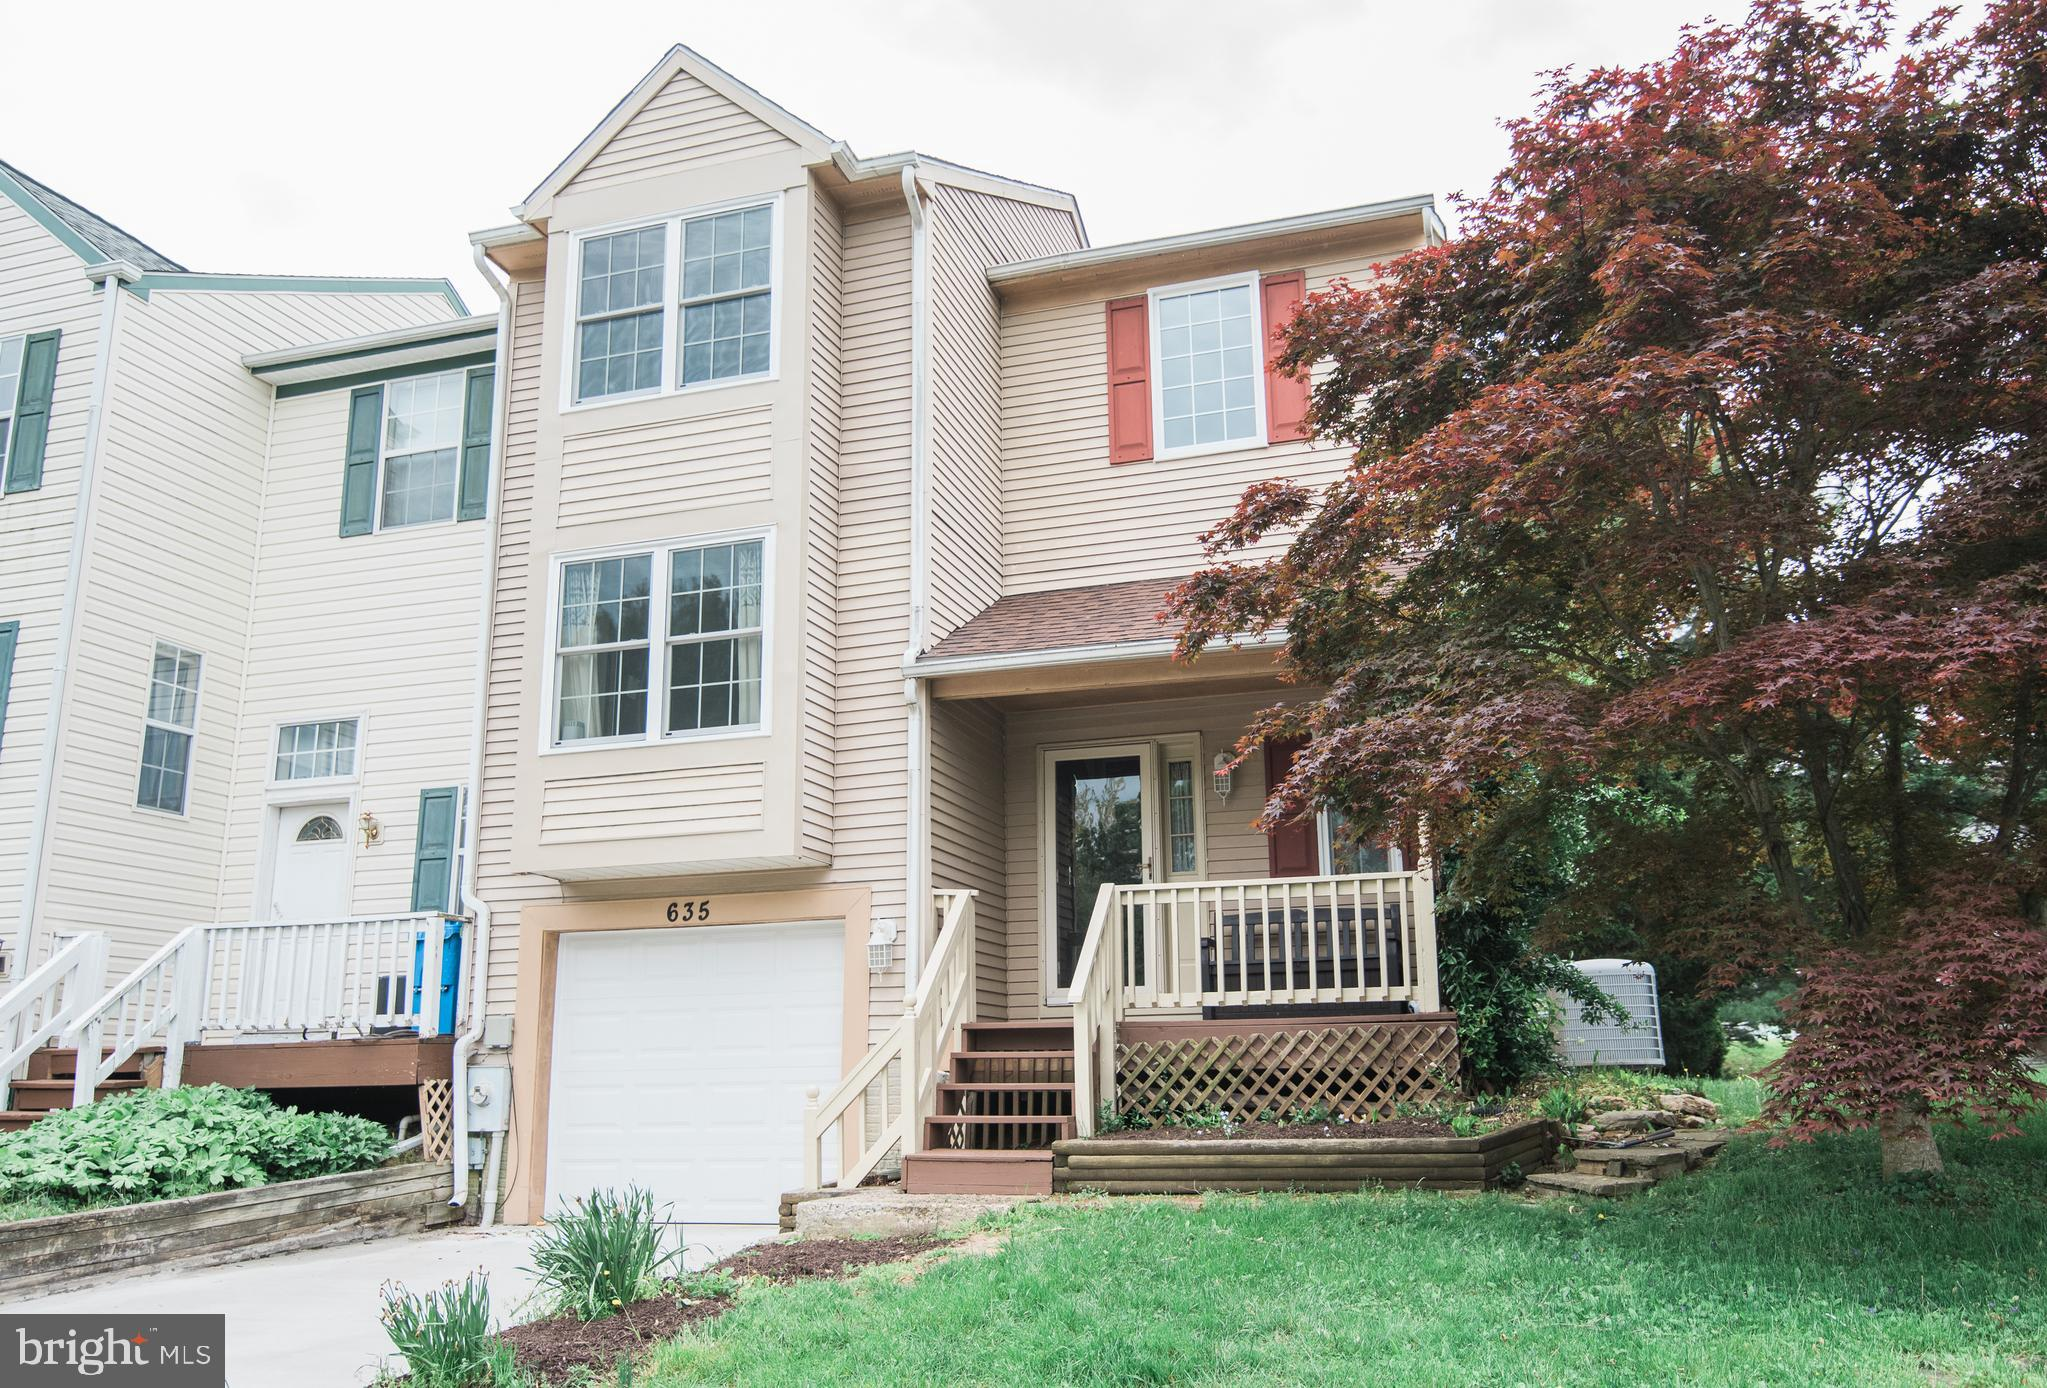 *** Multiple offers received, Seller will review all offers Monday, May 10th  at 3PM*** This beautiful End of Group Townhome in sought after Fountain Glen WITH a garage is the best of both worlds. This home features a split entry foyer with lots of sunlight throughout. Moving through the house you will find three nice size bedrooms, 2 full and one half recently updated baths, replacement windows, updated kitchen and all new flooring which was upgraded this year.  Home was recently completely repainted and a newer roof which is only a few years old. The back yard offers privacy for outdoor living for those long weekends at home. This is a must see and won't last long. Schedule your showing asap!!